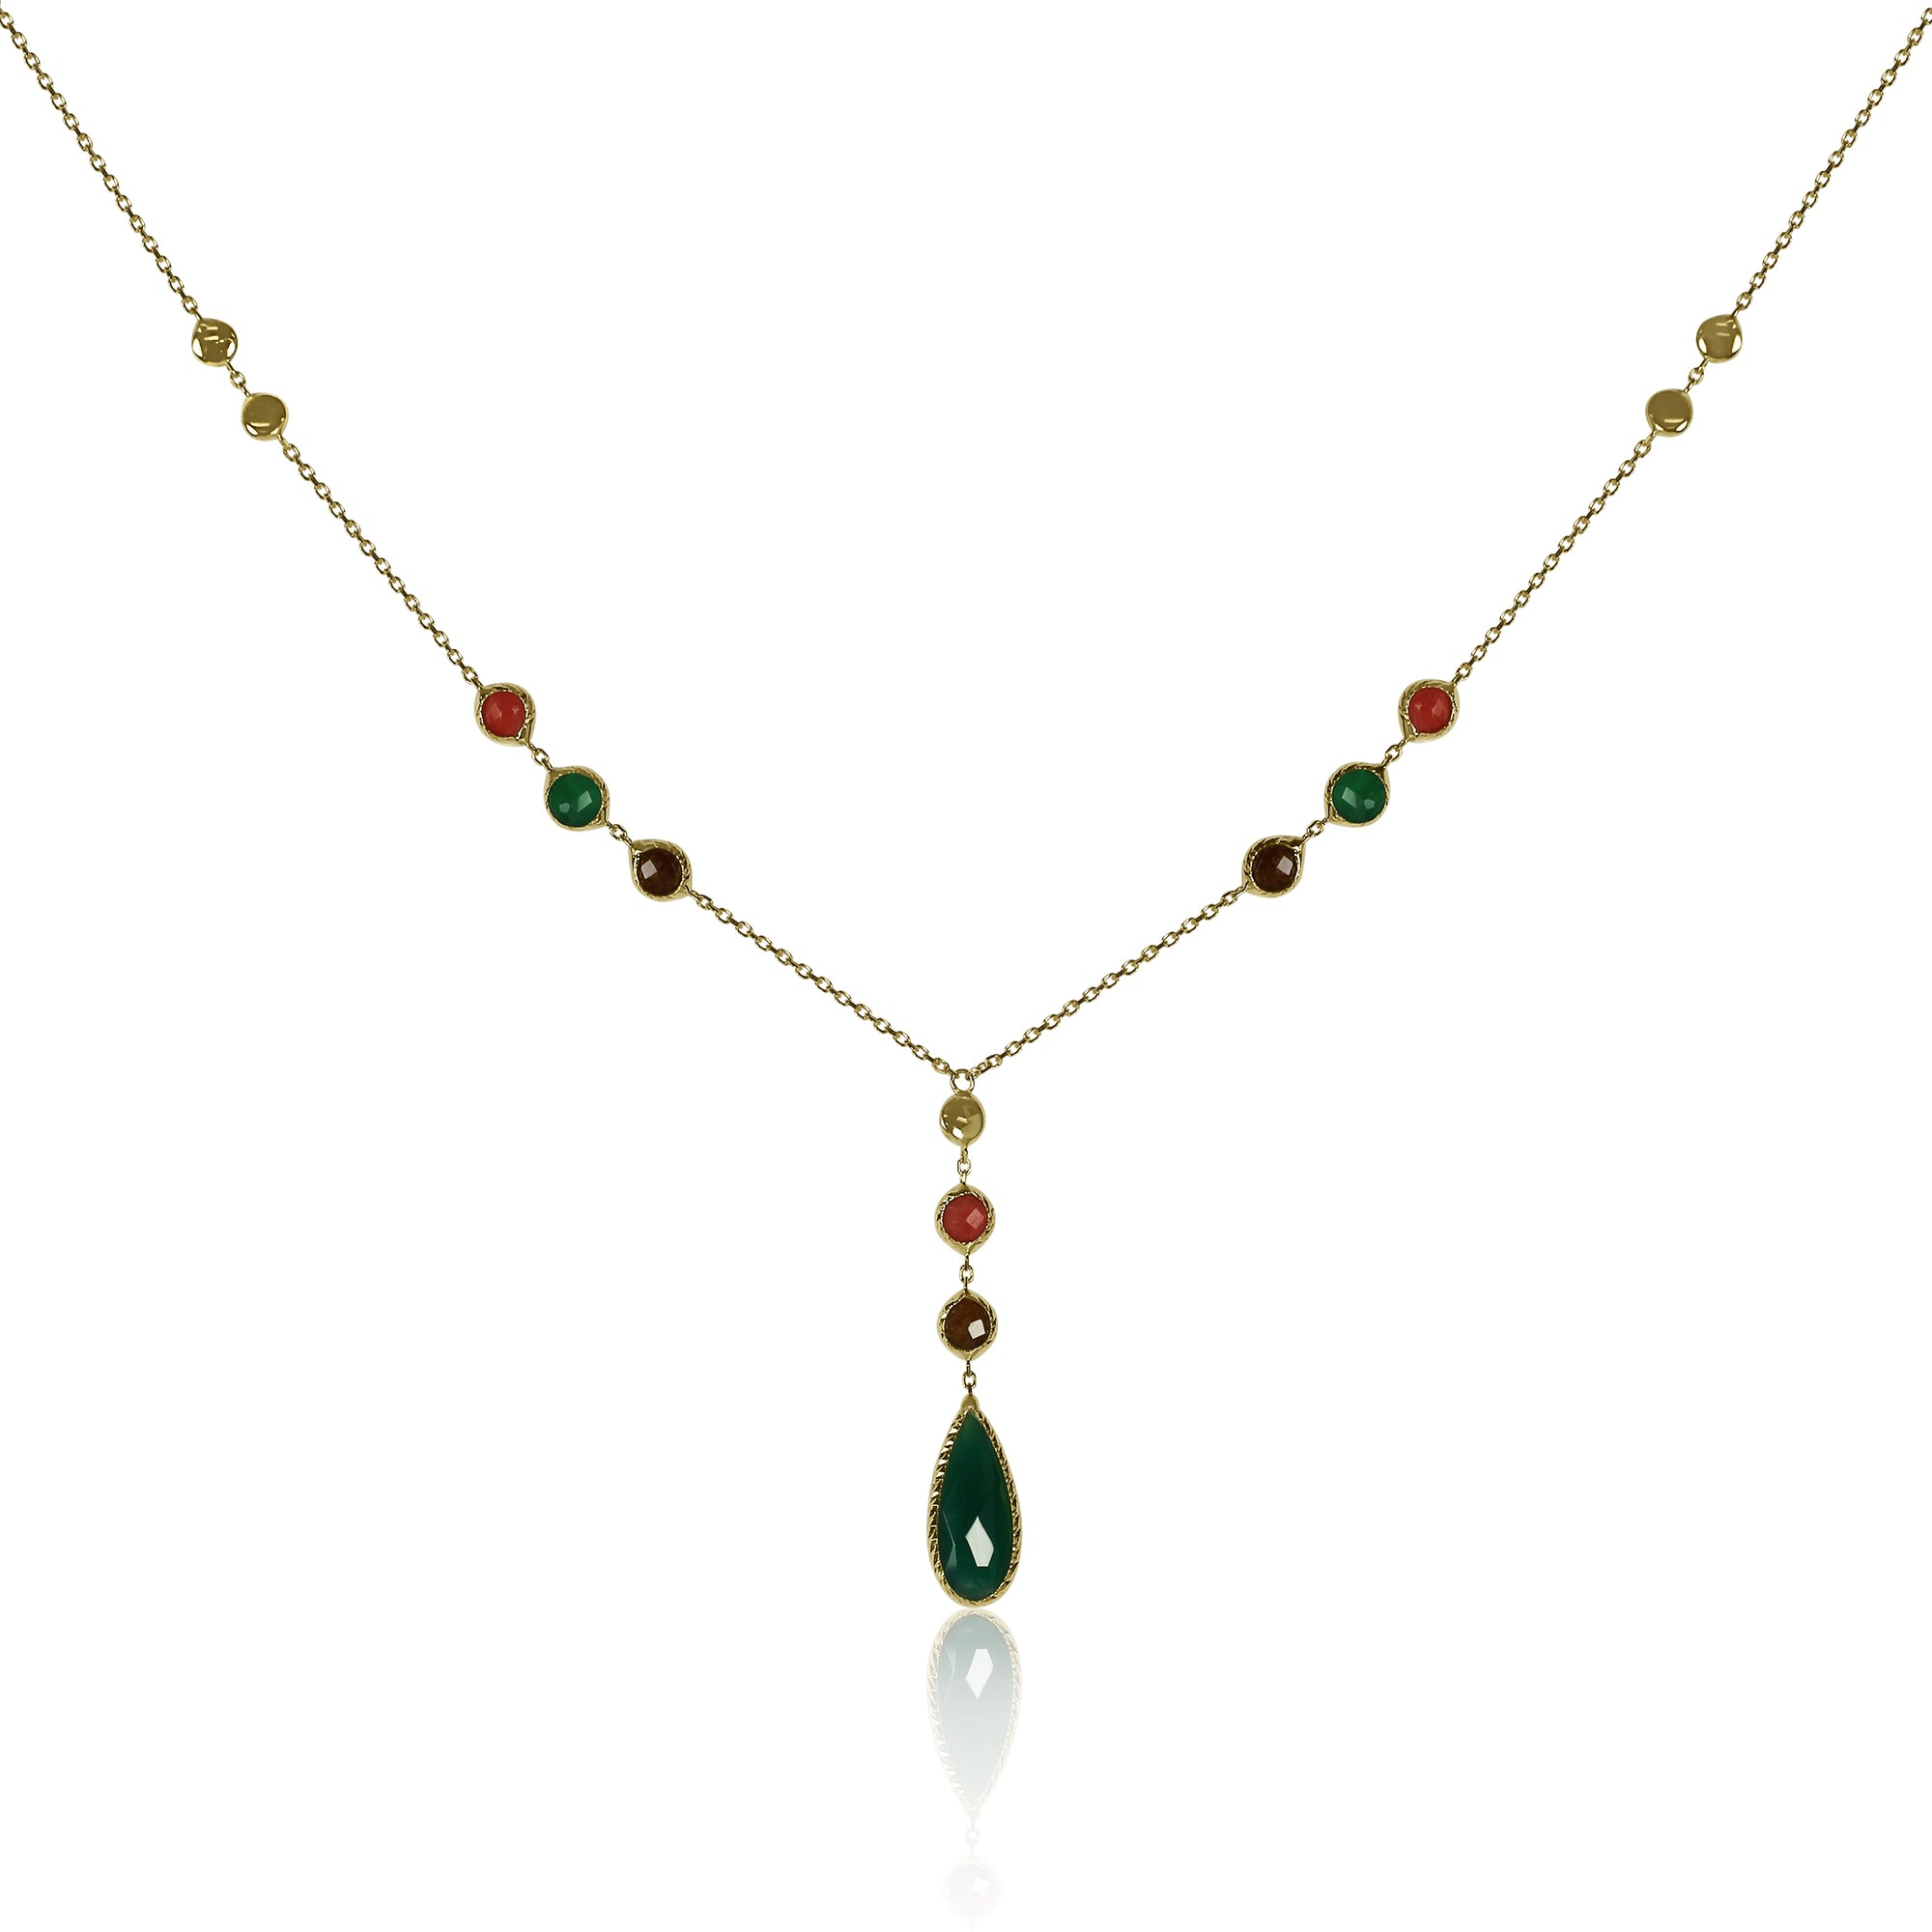 necklace pendant emerald watches gold free diamond jewelry tdw product stone overstock seraphina today shipping cut